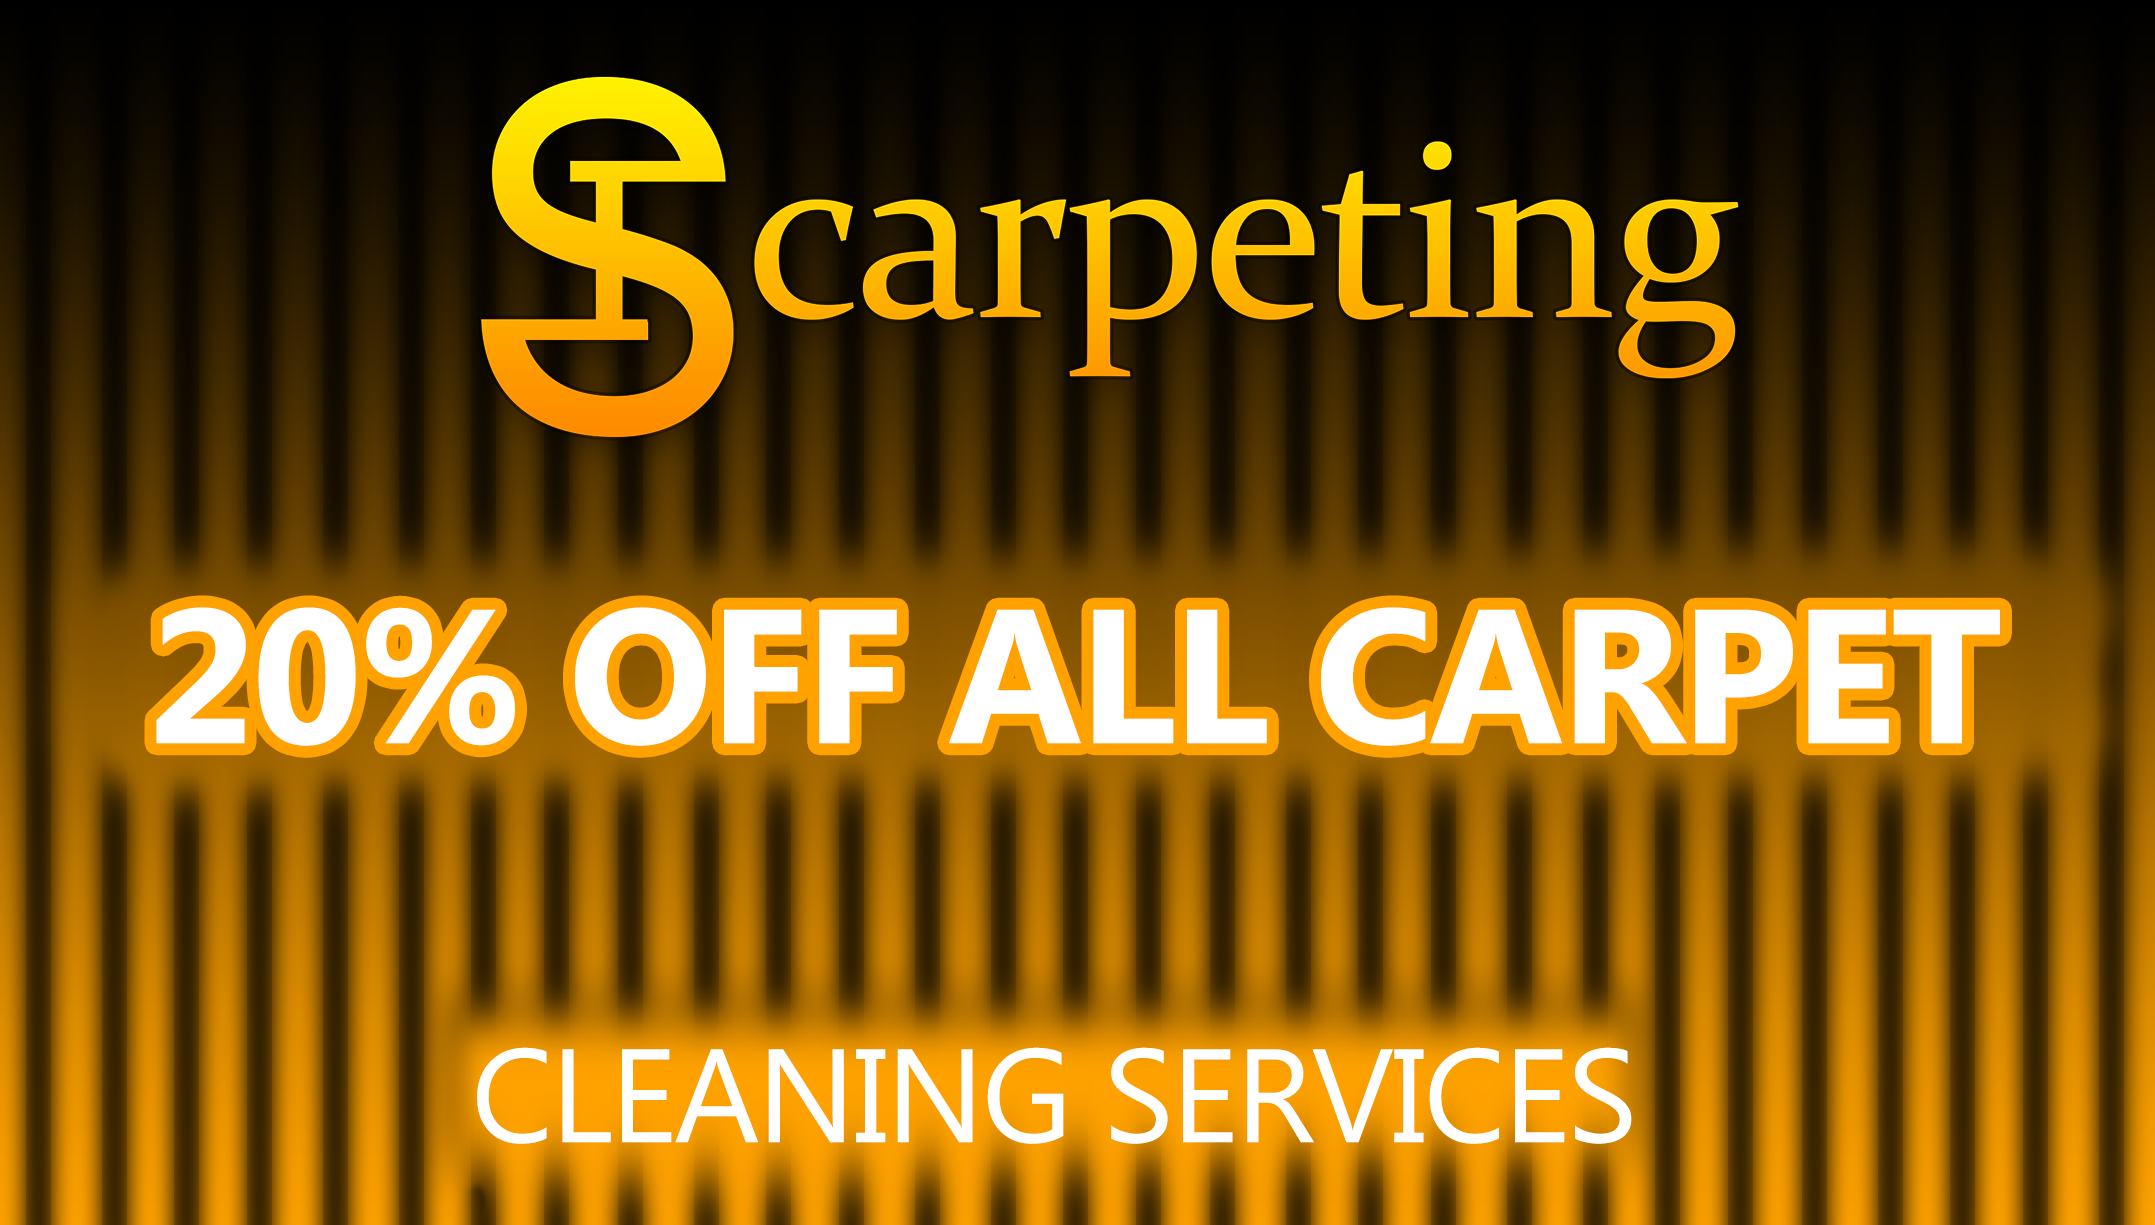 20 PERCENT OFF FOR ALL CLEANING SERVICES